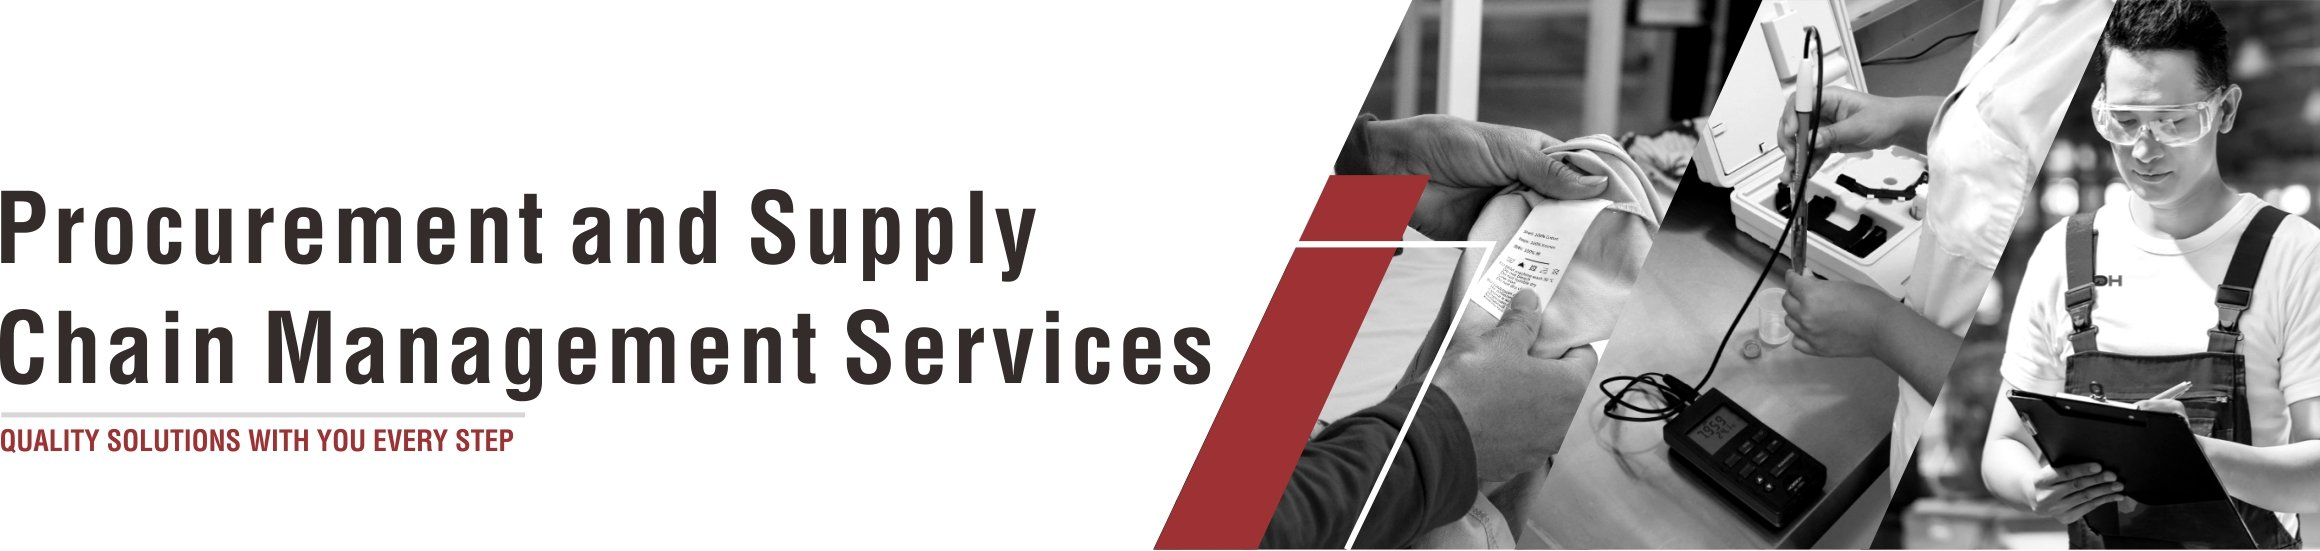 Procurement and Supply Chain Management Services